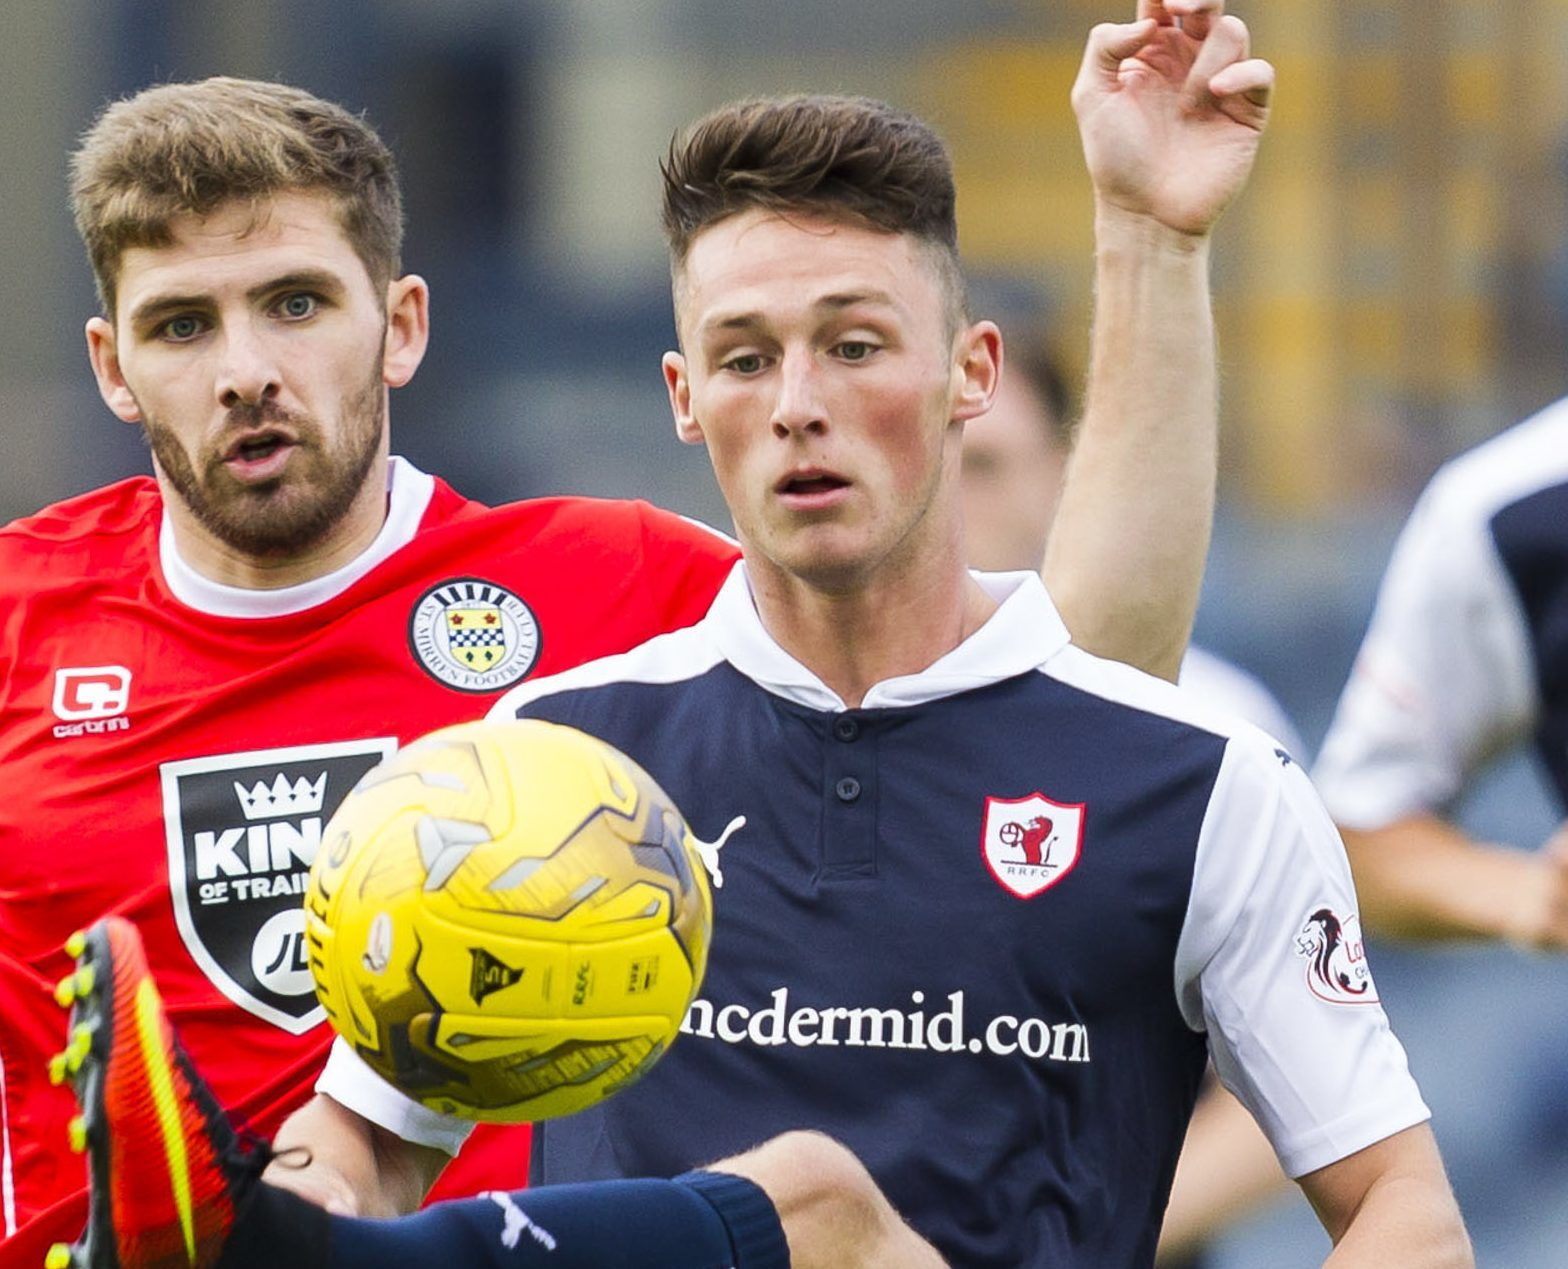 Jordan Thompson in action for Raith.